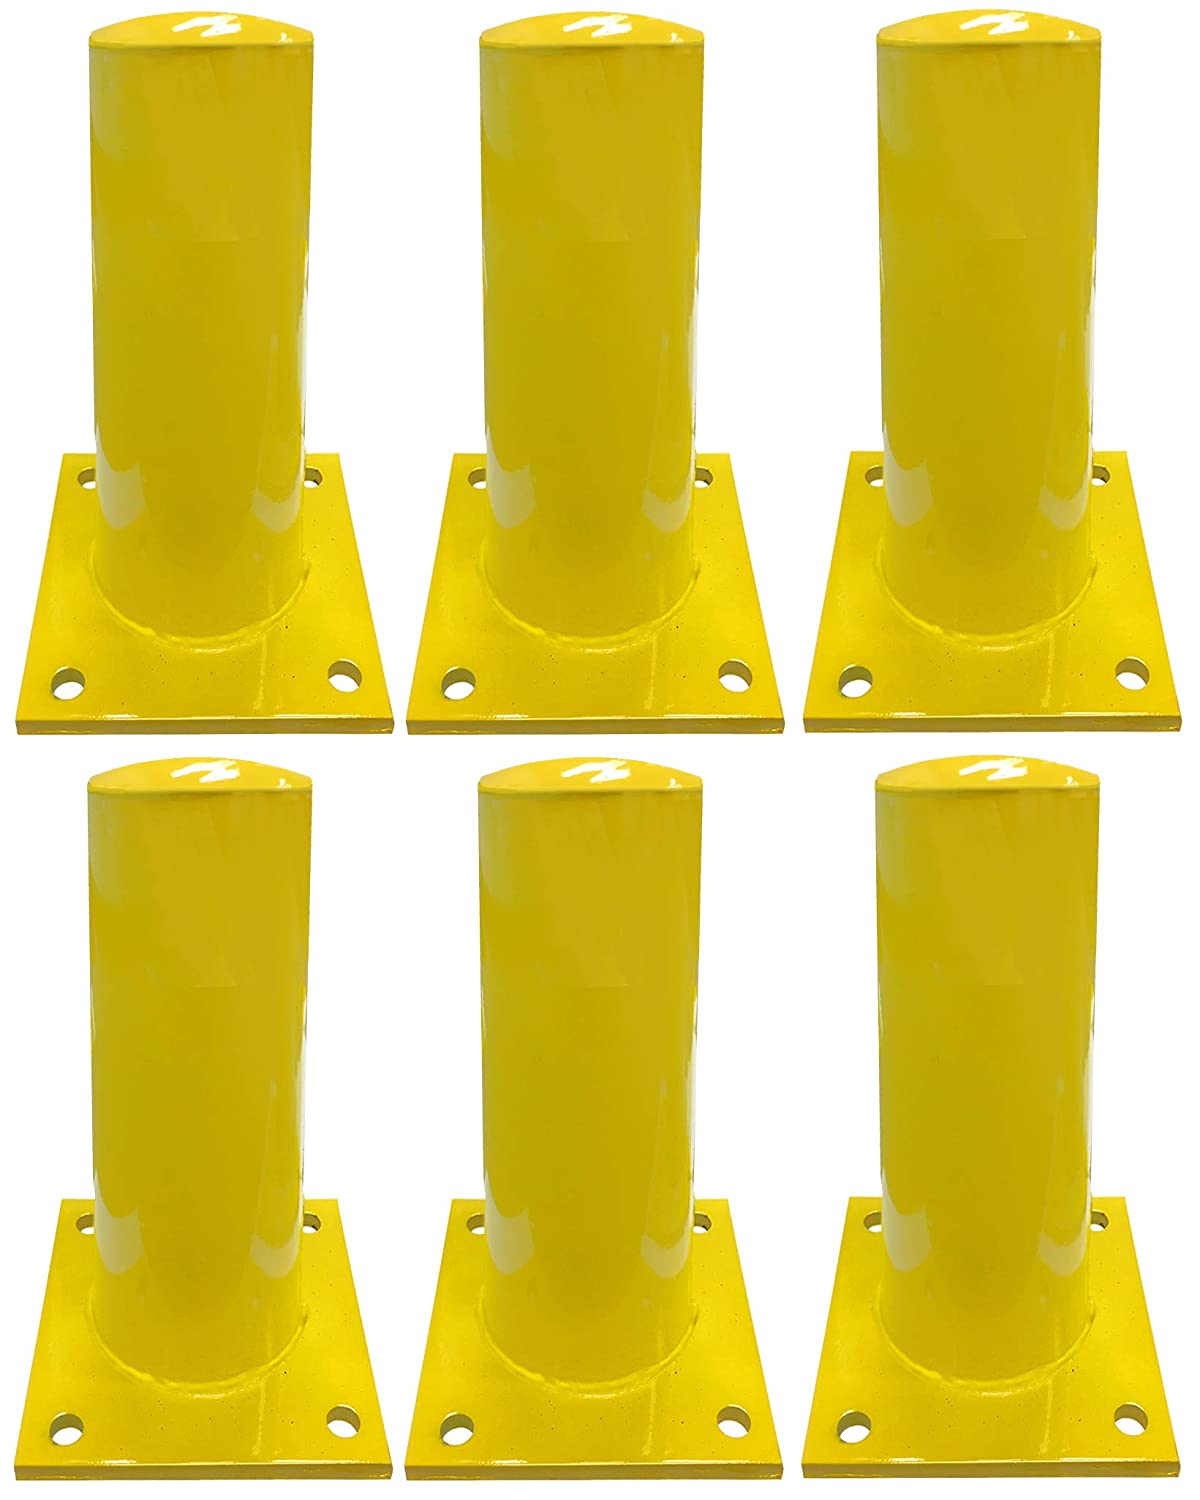 - Pack of 2 36 Height - 4.5 OD Electriduct 3 Feet Steel Pipe Safety Bollard Post Yellow Parking Lot Traffic Barrier